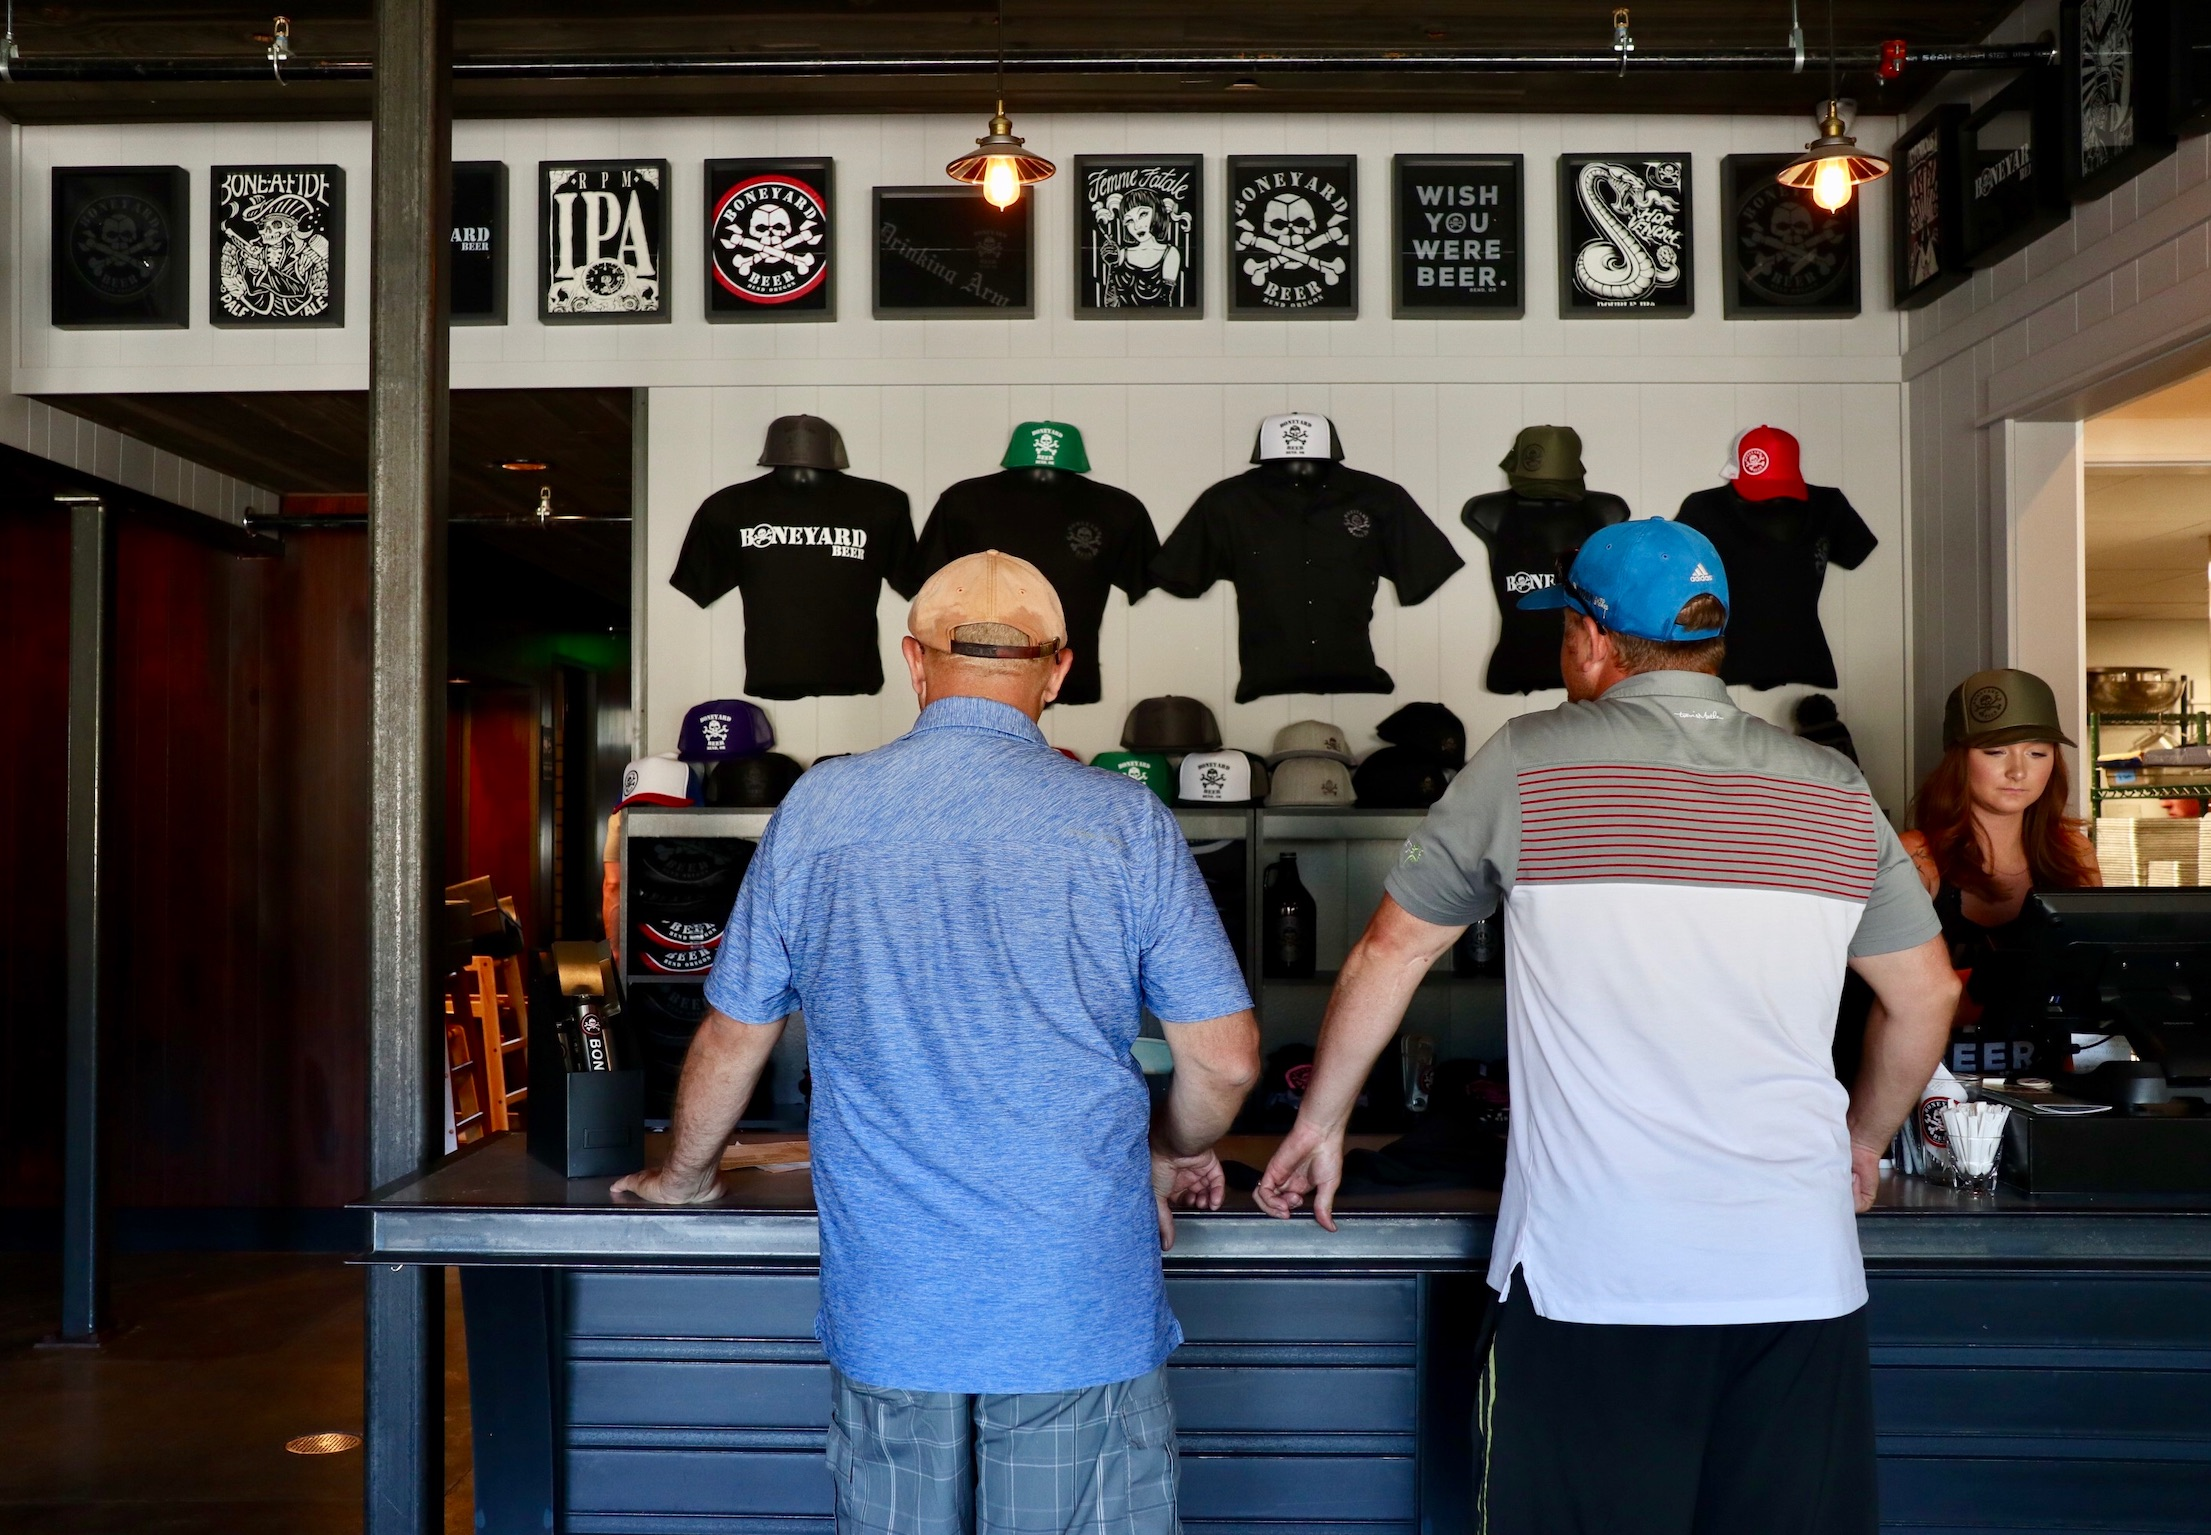 Boneyard merchandise on display at the new Boneyard Pub. (photo by Cat Stelzer)